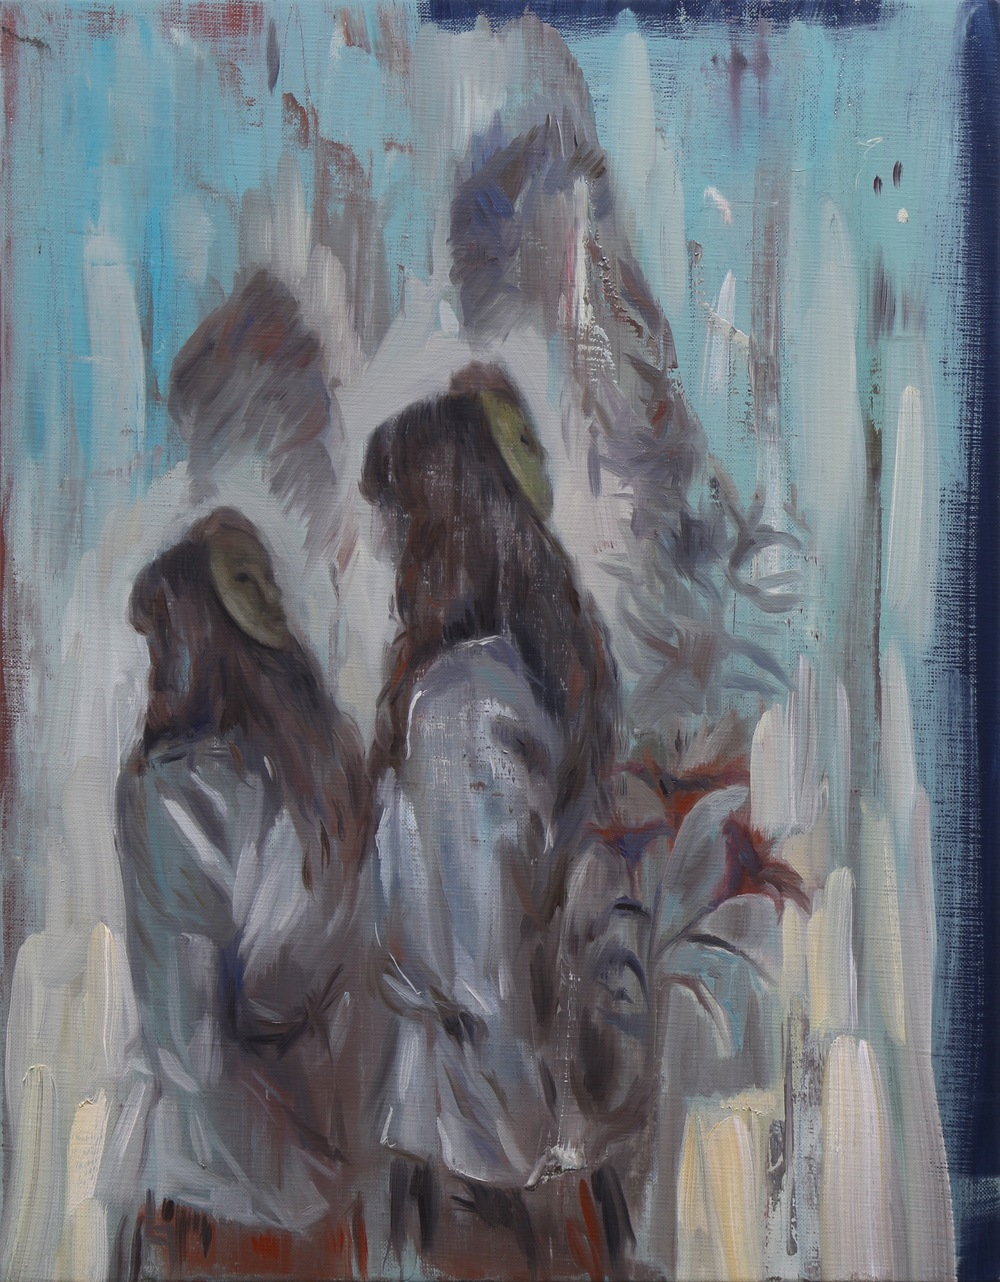 The Followers, Oil on linen, 45 x 35cm, 2014